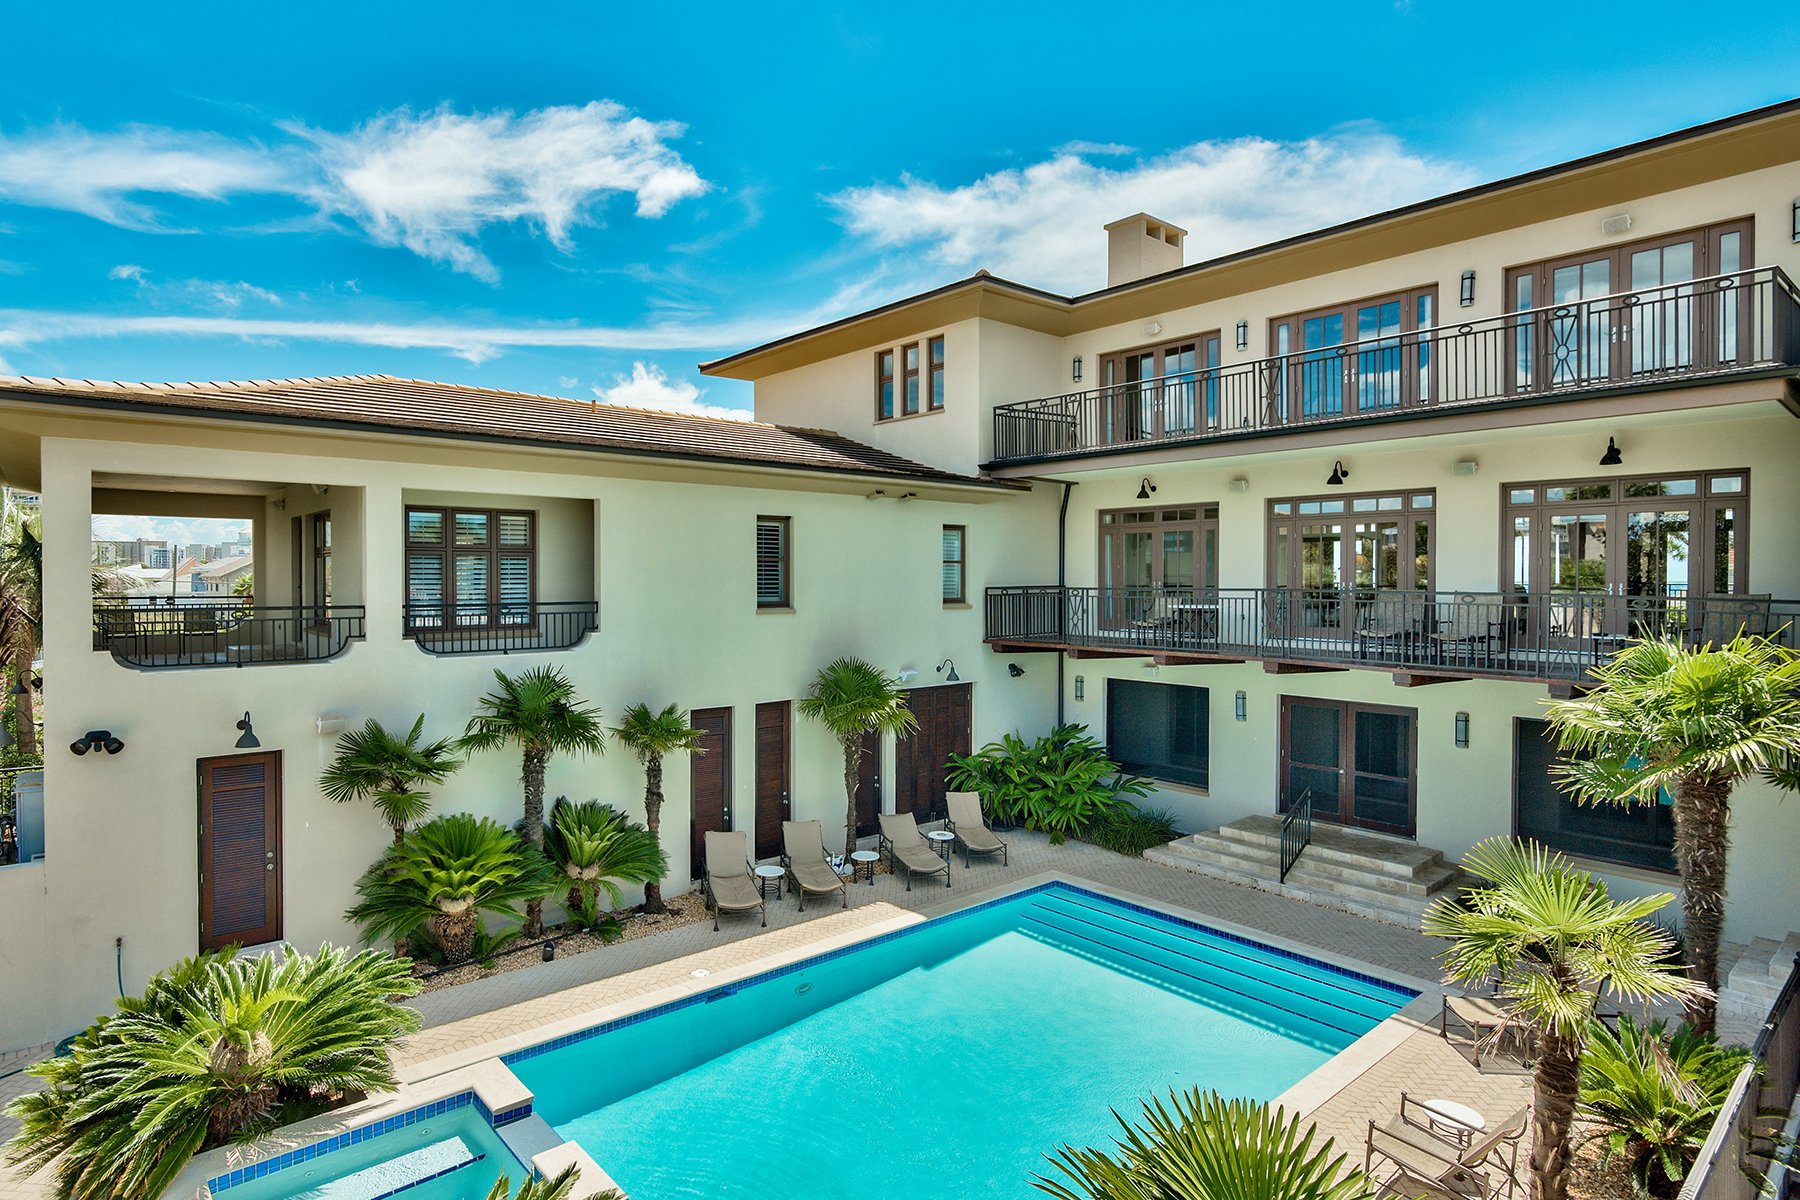 Maison unifamiliale pour l Vente à CANAL FRONT HOLIDAY ISLE RETREAT 627 Gulf Shore Drive Destin, Florida, 32541 États-Unis